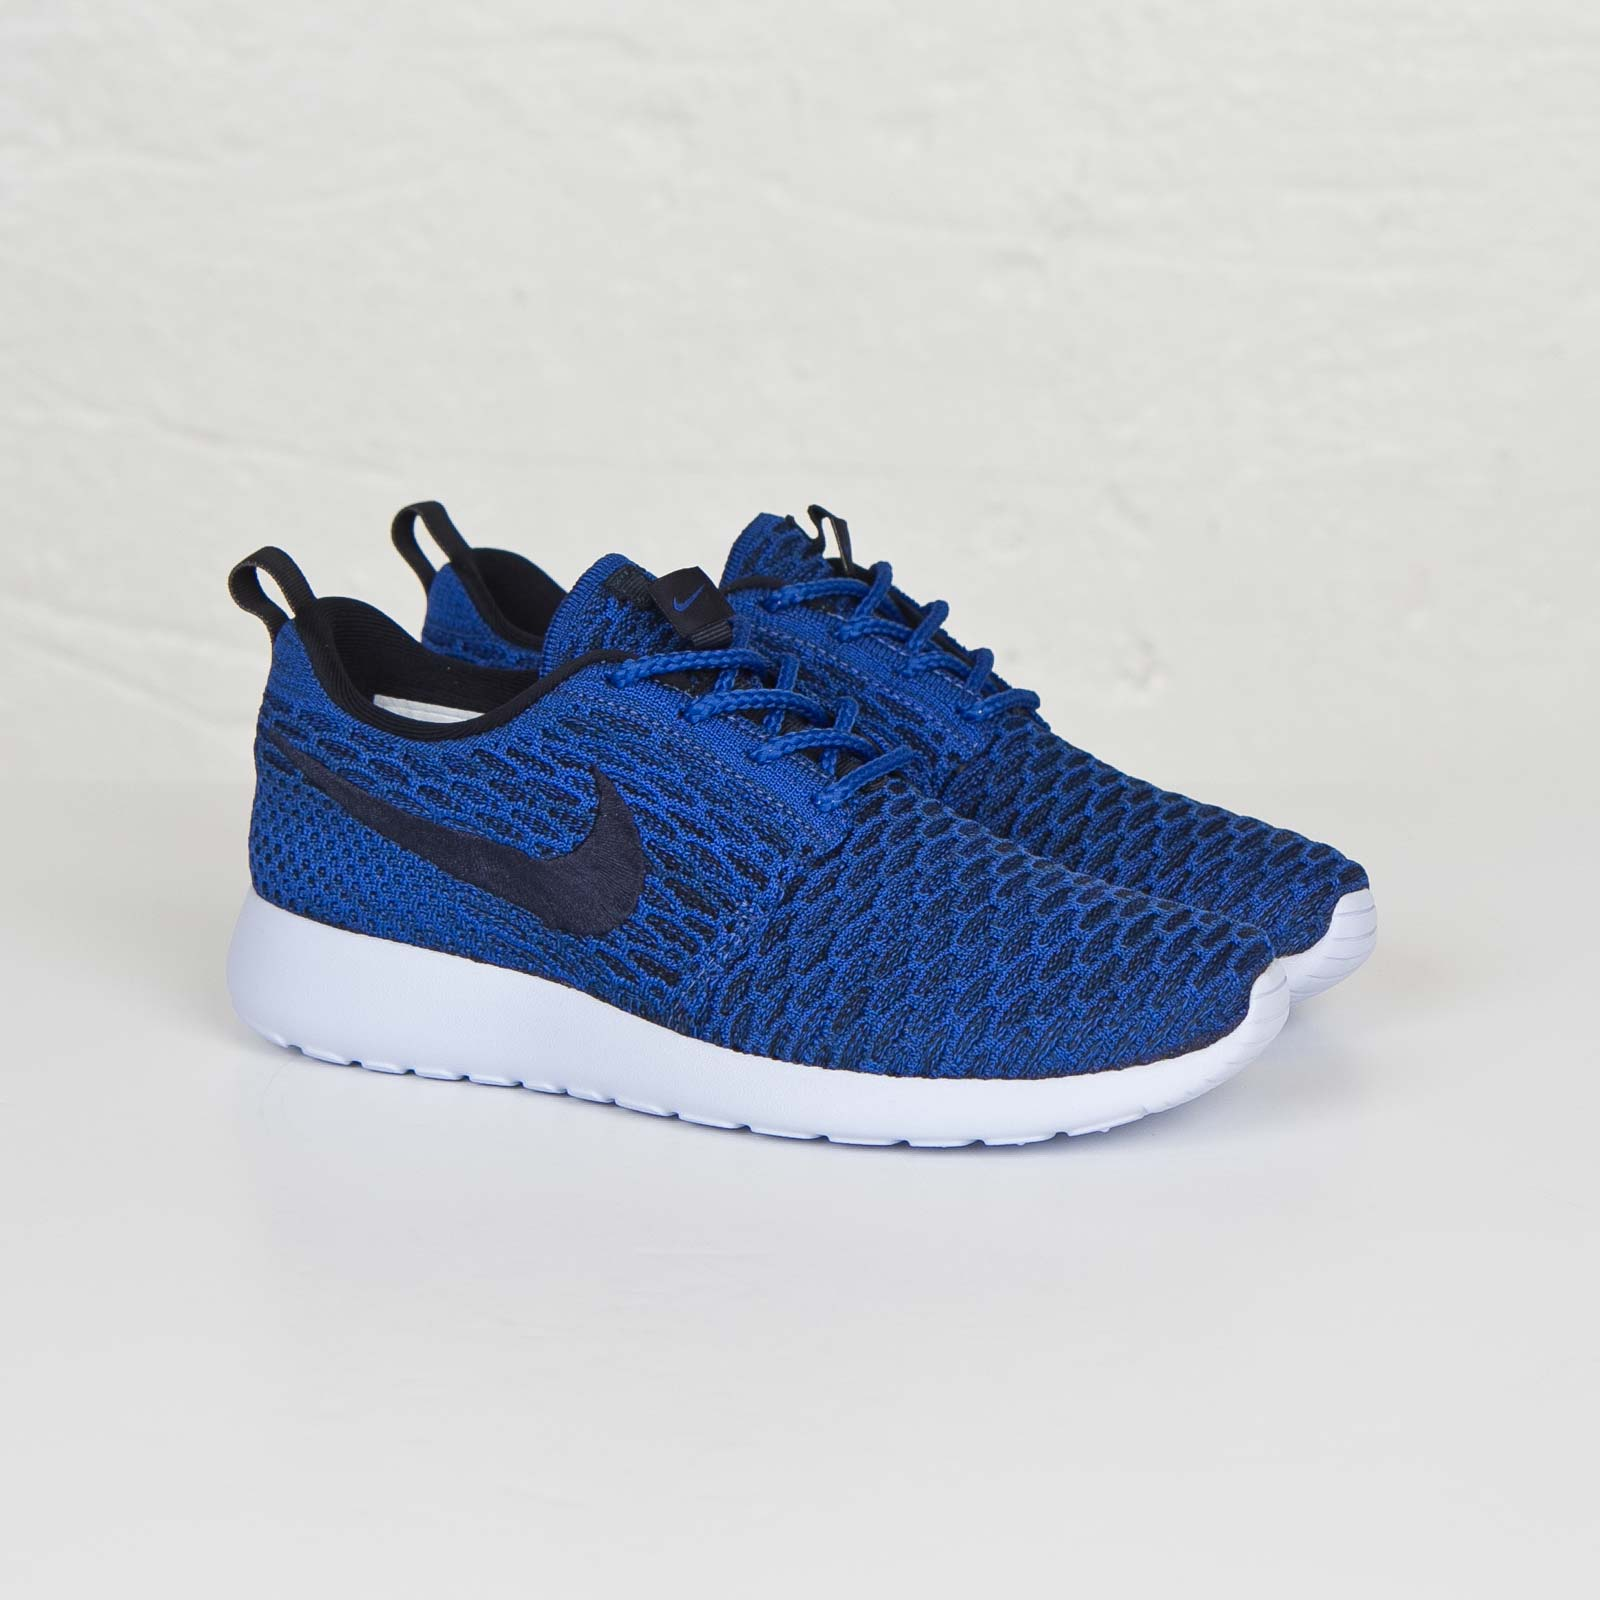 Details about New Nike Rosherun Flyknit Running 704927 400 SZ 8 Athetic Shoes Blue